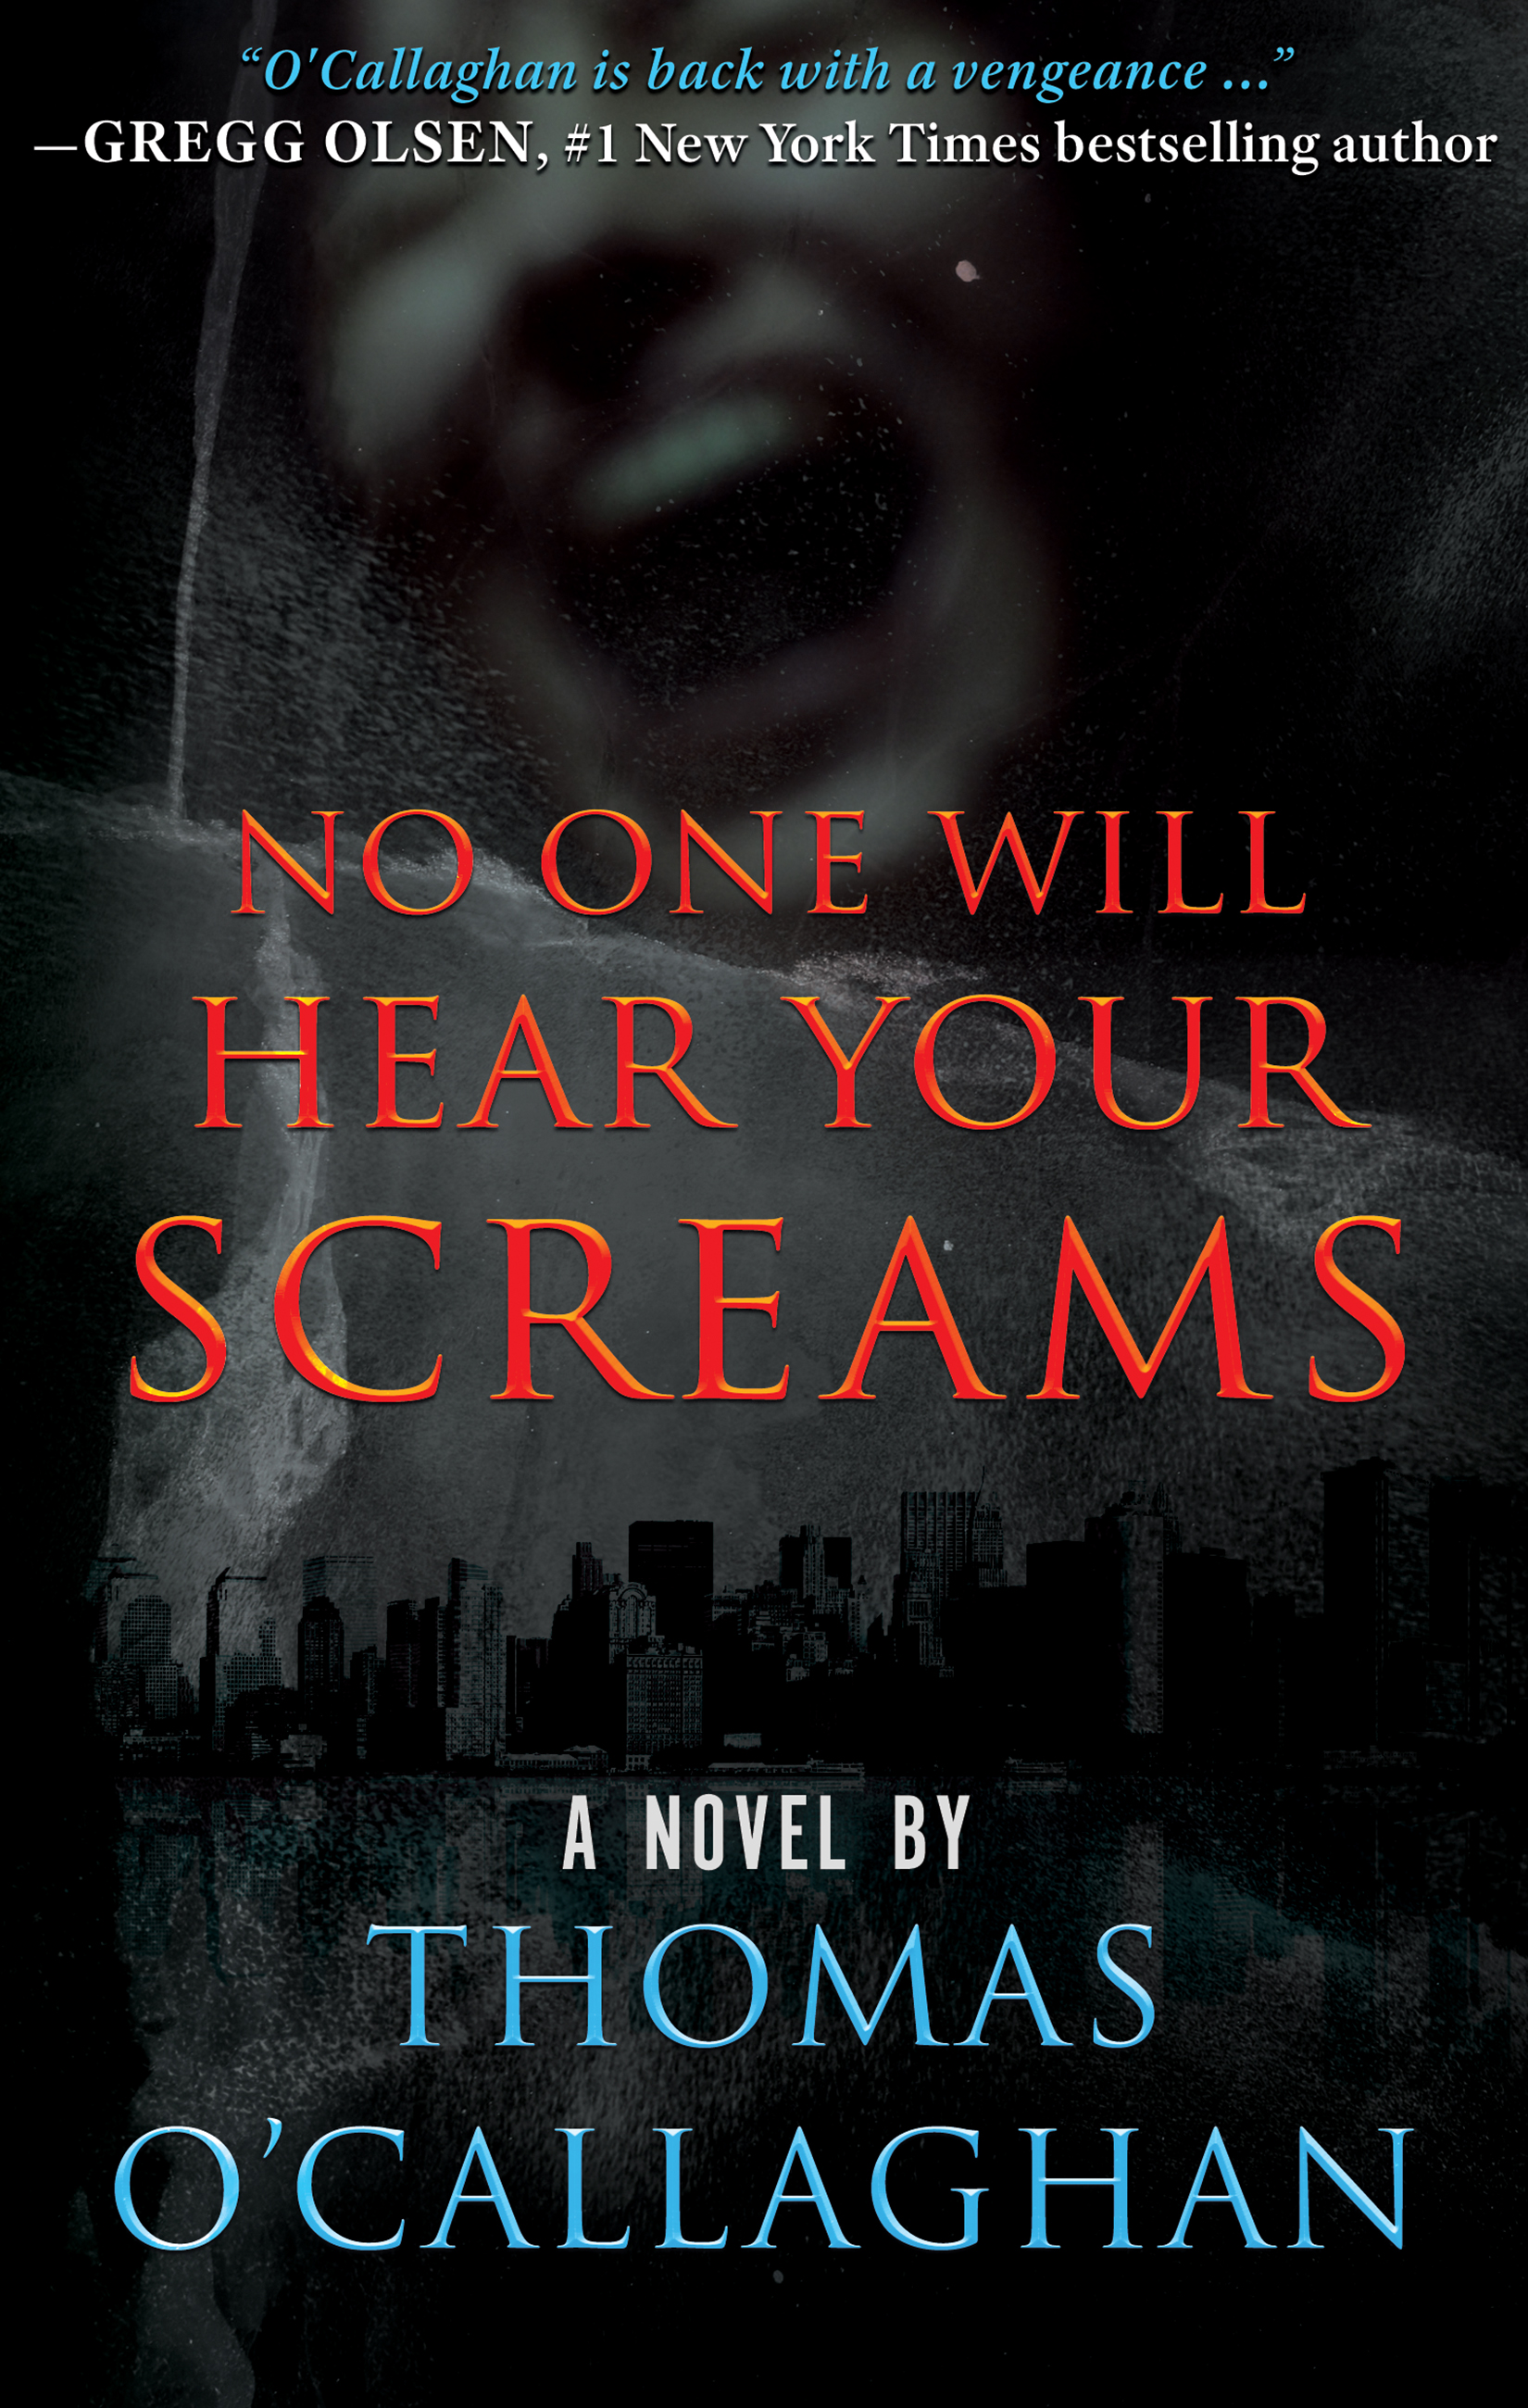 No One will hear will you scream book image